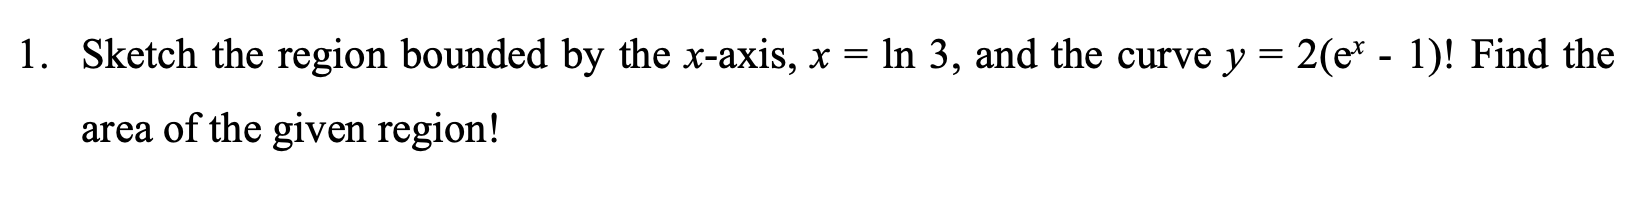 1. Sketch the region bounded by the x-axis, x = ln 3, and the curve y = 2(et - 1)! Find the area of the given region!